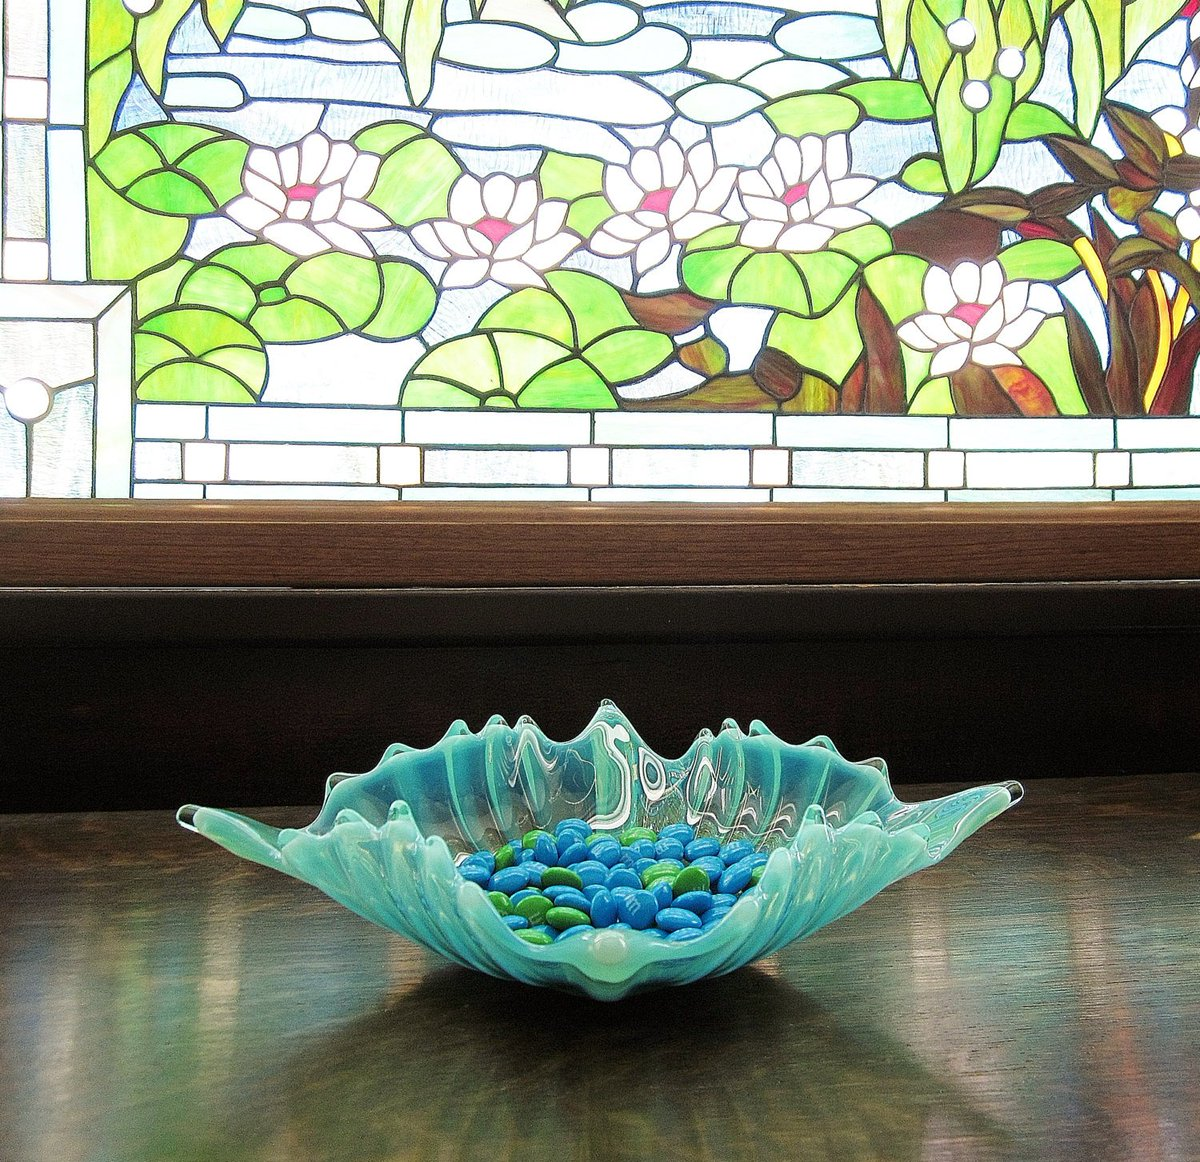 Opalescent Glass Candy Dish Fostoria Heirloom Star Bowl Mid Century 1960s Collectible Art Glass Mint Green Aquamarine Home Decor https://etsy.me/2zhlMHF #vintage #collectibles #blue #green #opalescentglass #glasscandydish #fostoriaheirloom #starbowl #midcentury1960s